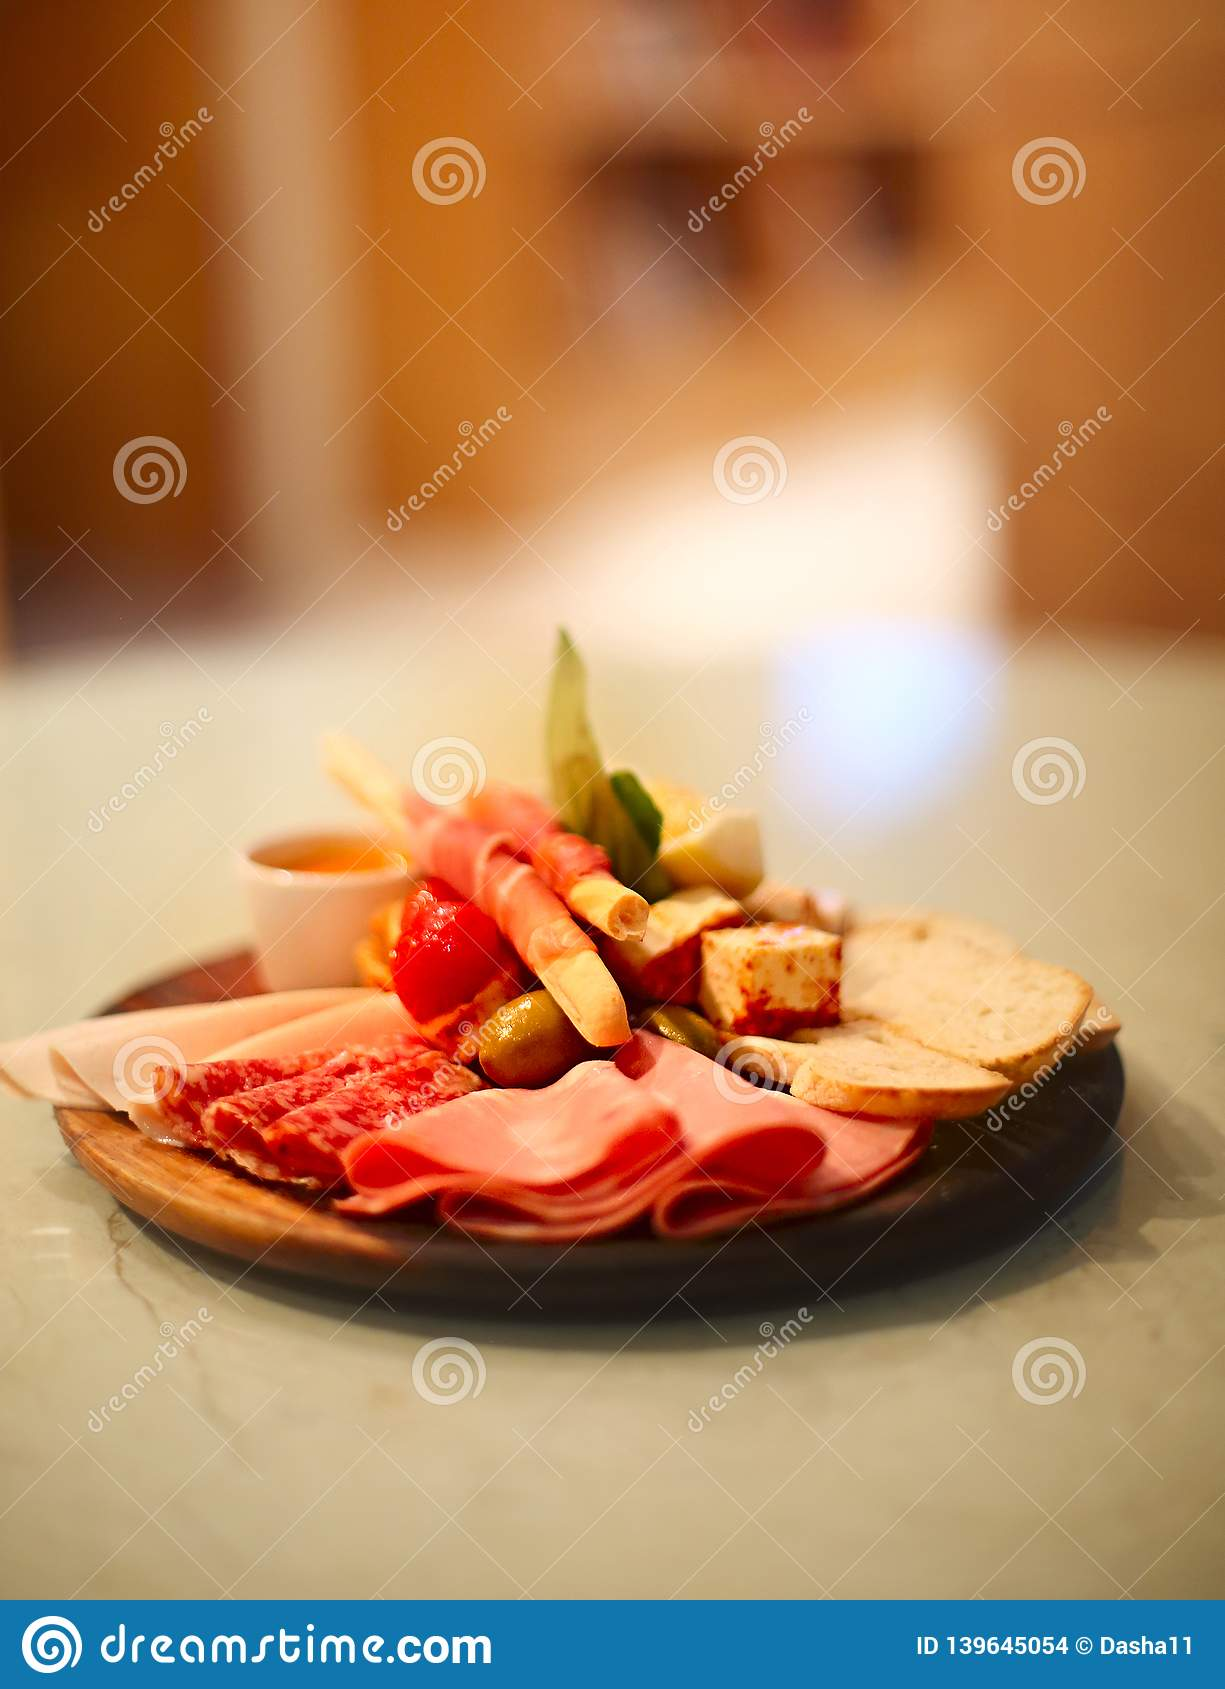 Mix of traditional spanish ham salami, parma ham on grissini bread sticks, marinated vegetables and olives on wooden plate with